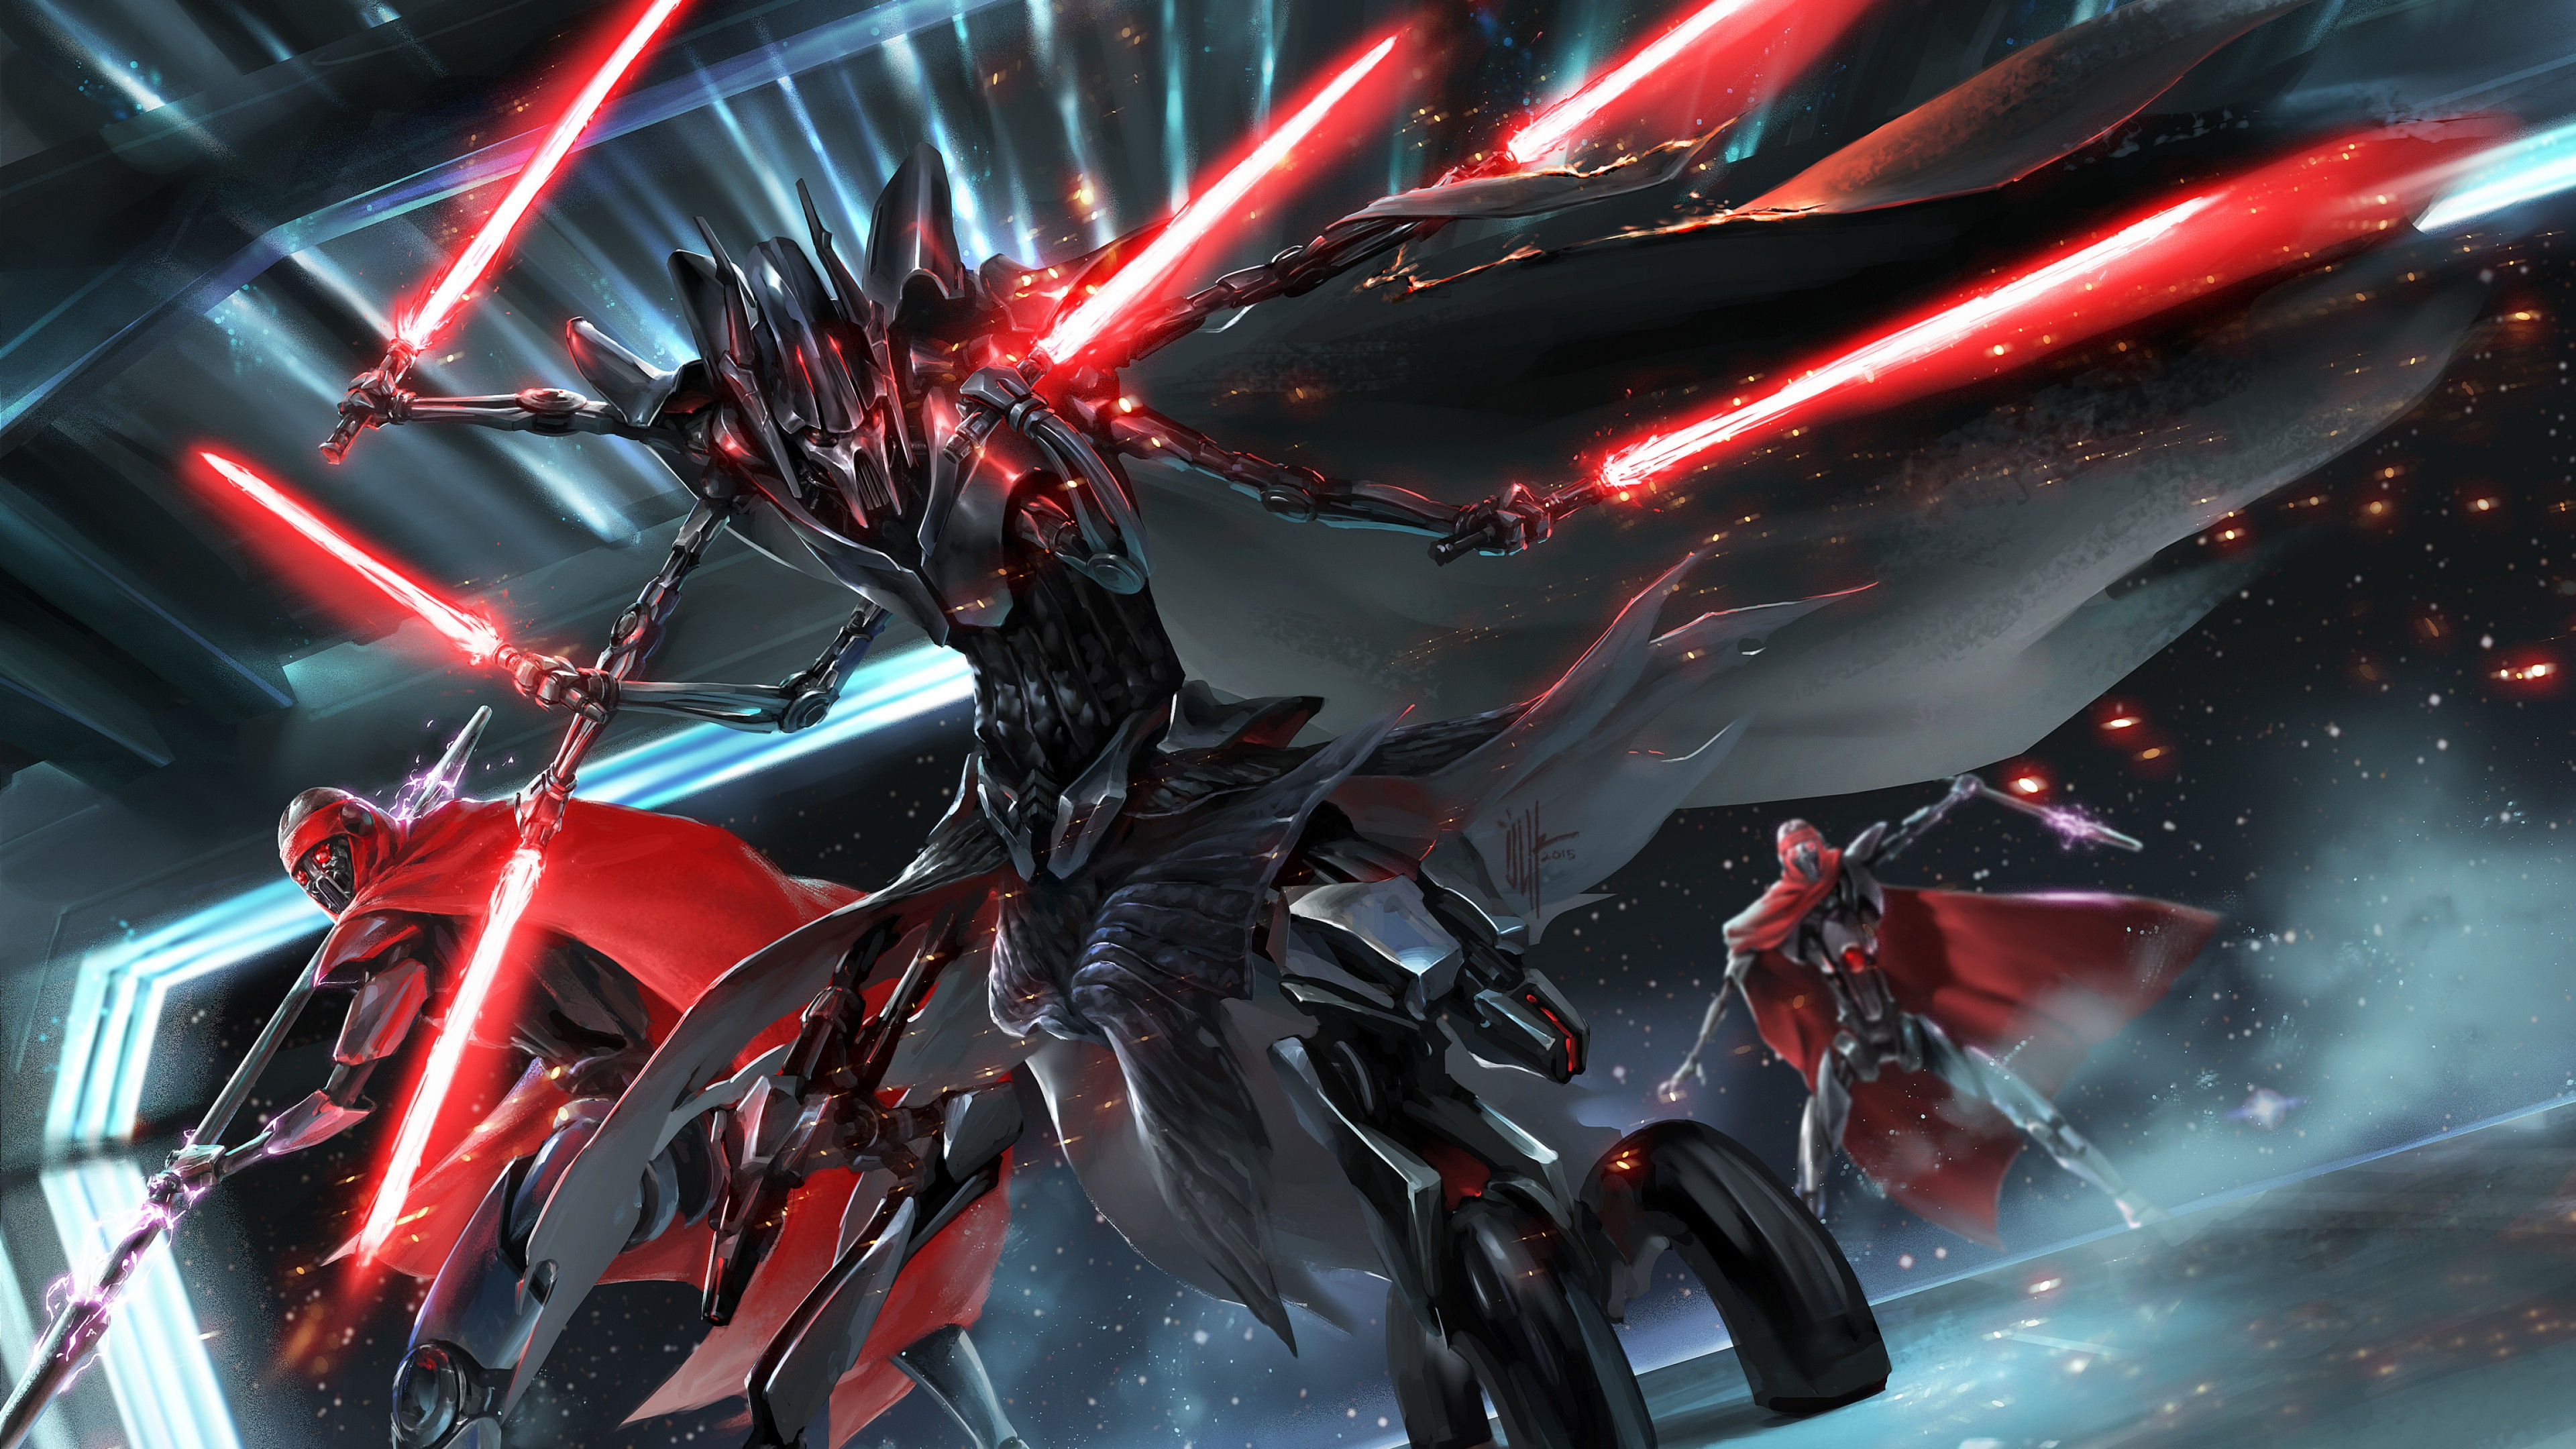 Star Wars General Grievous Sith 2927338 Hd Wallpaper Backgrounds Download